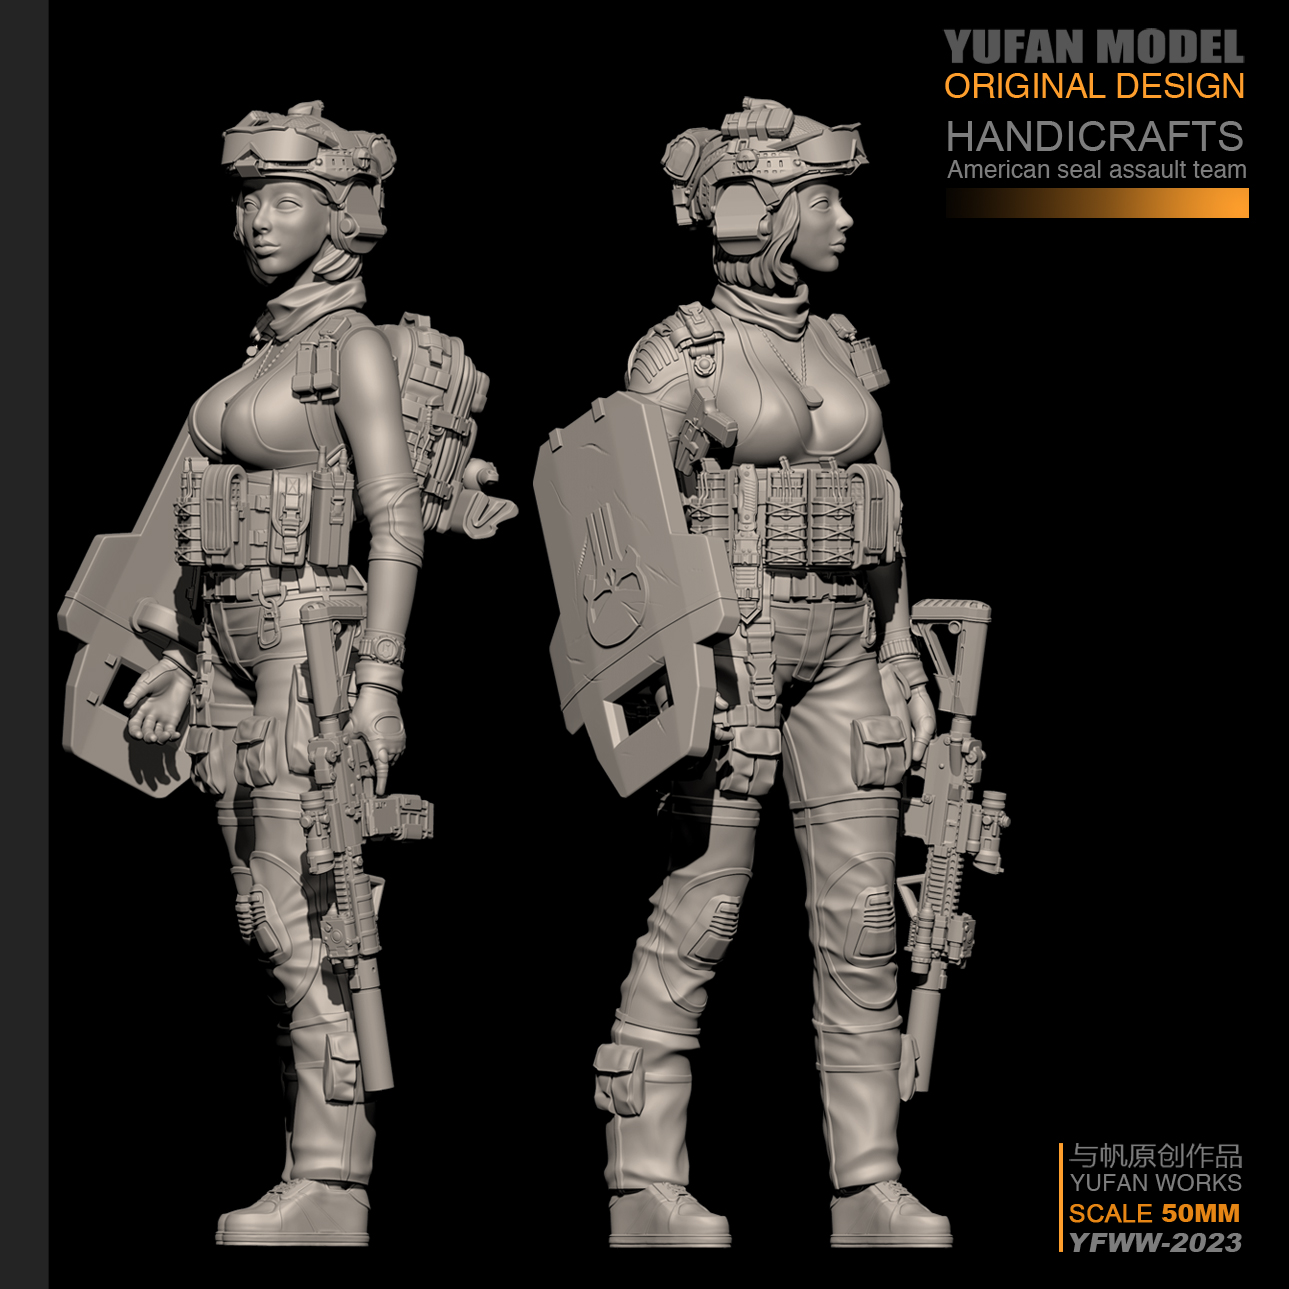 YUFan Model 1/35 Resin Kits Modern Female Soldier Self-assembled YFWW35-2023